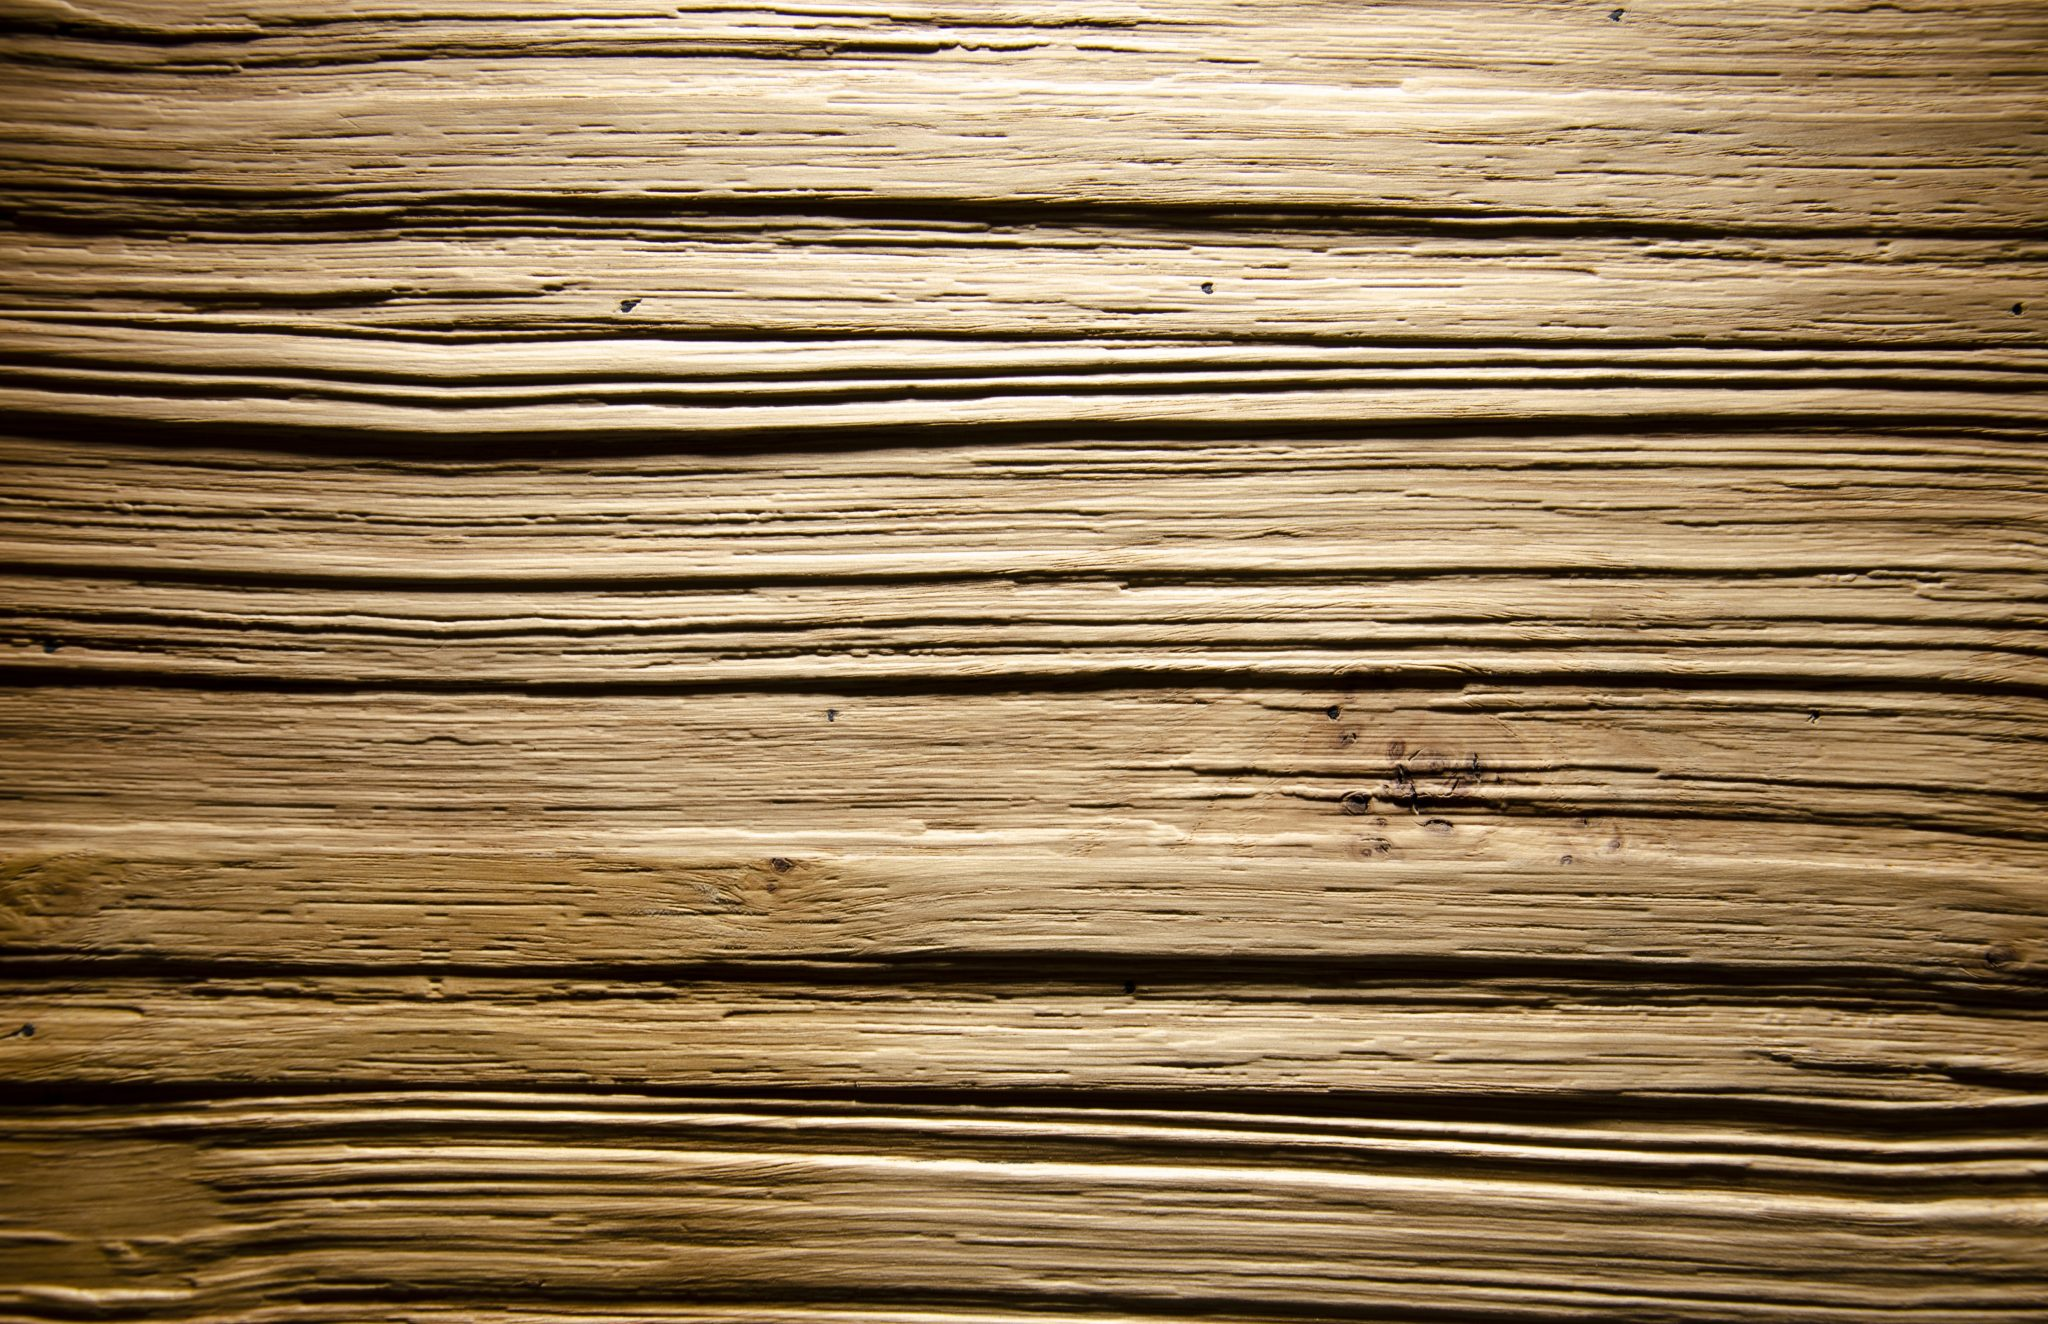 2491 - ANTIKWOOD - Rose Oak - Real wood veneer